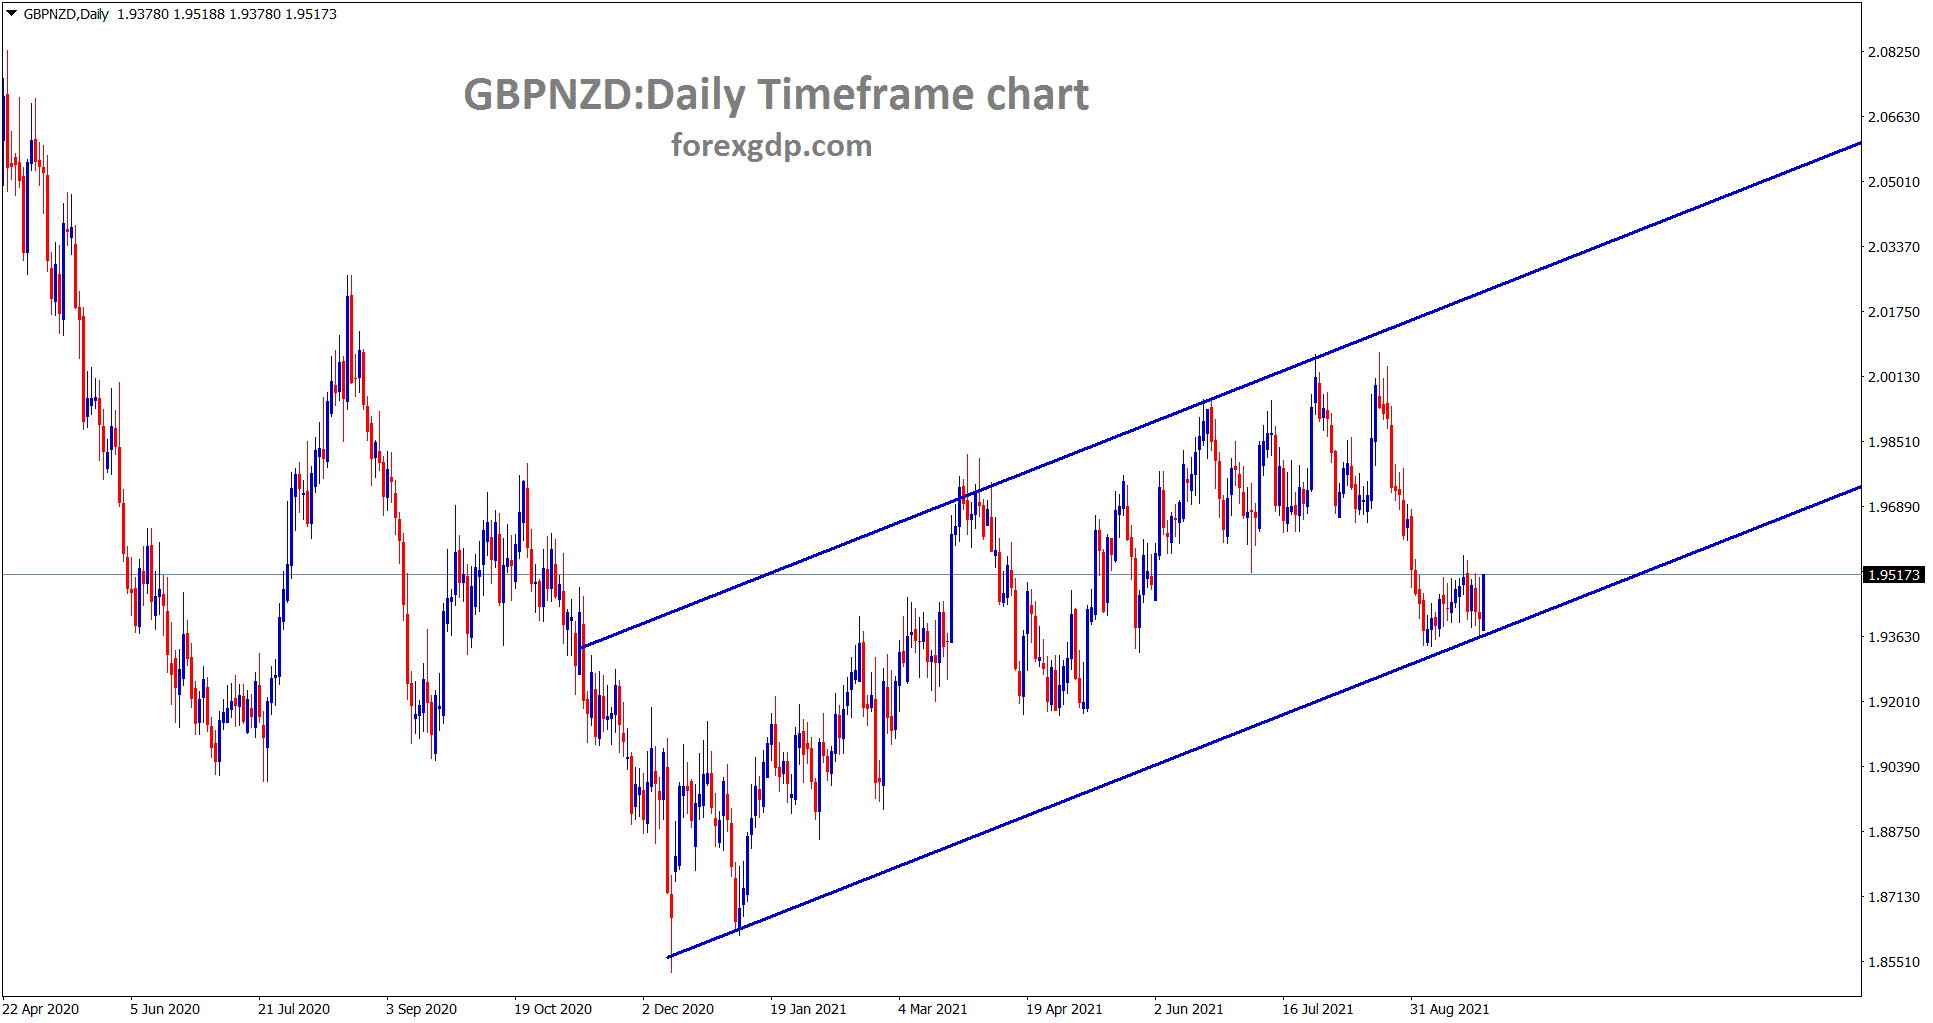 GBPNZD is rebounding from the higher low of the uptrend line